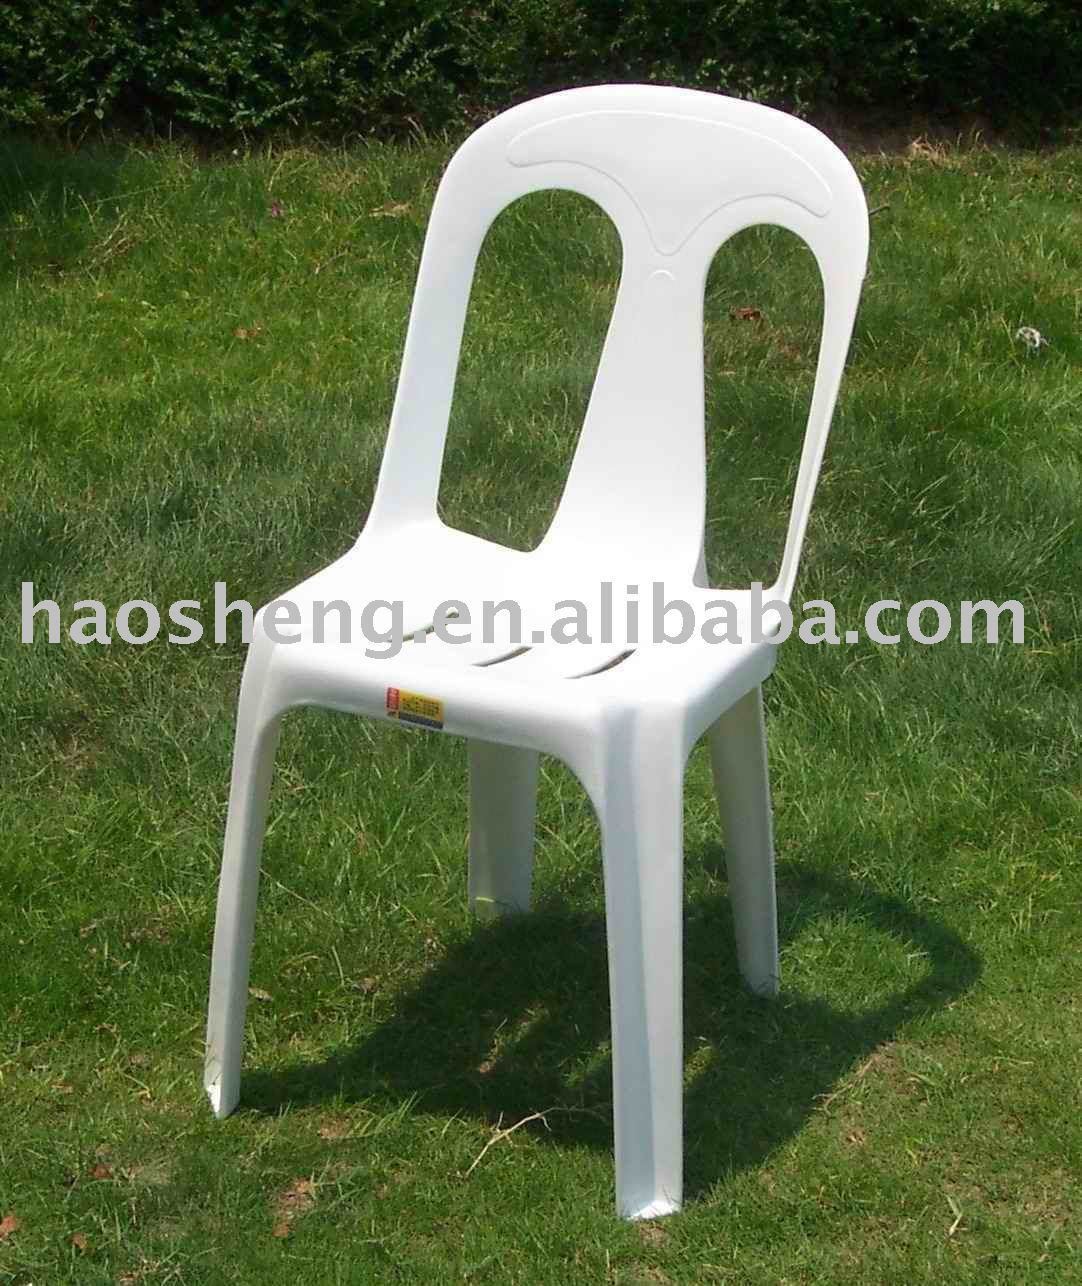 Garden Chairs Without Arms, Garden Chairs Without Arms Suppliers And  Manufacturers At Alibaba.com